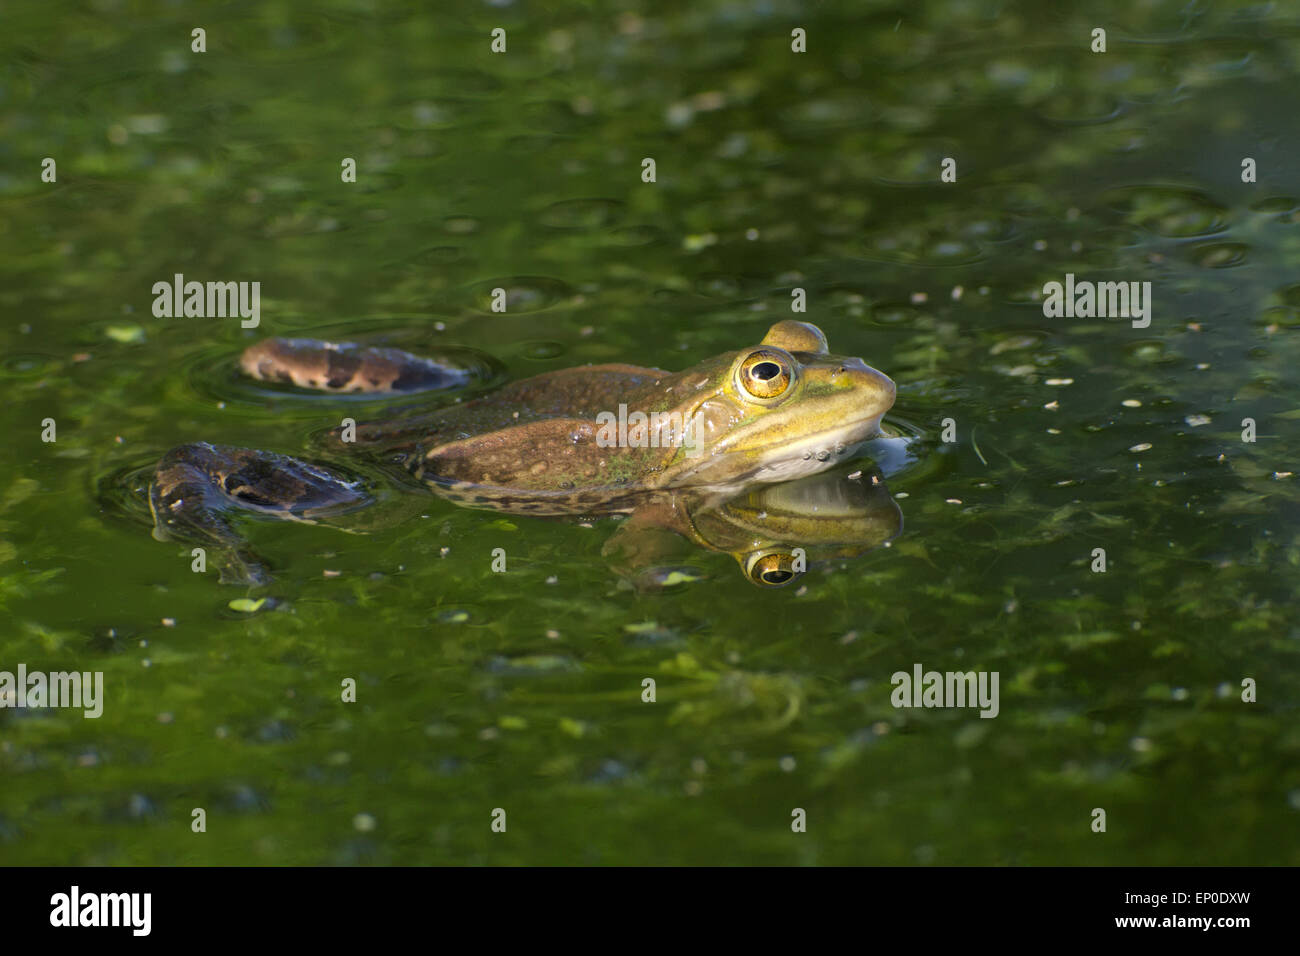 Edible or common water frog (Pelophylax kl. Esculentus) swimming in a pond - Stock Image